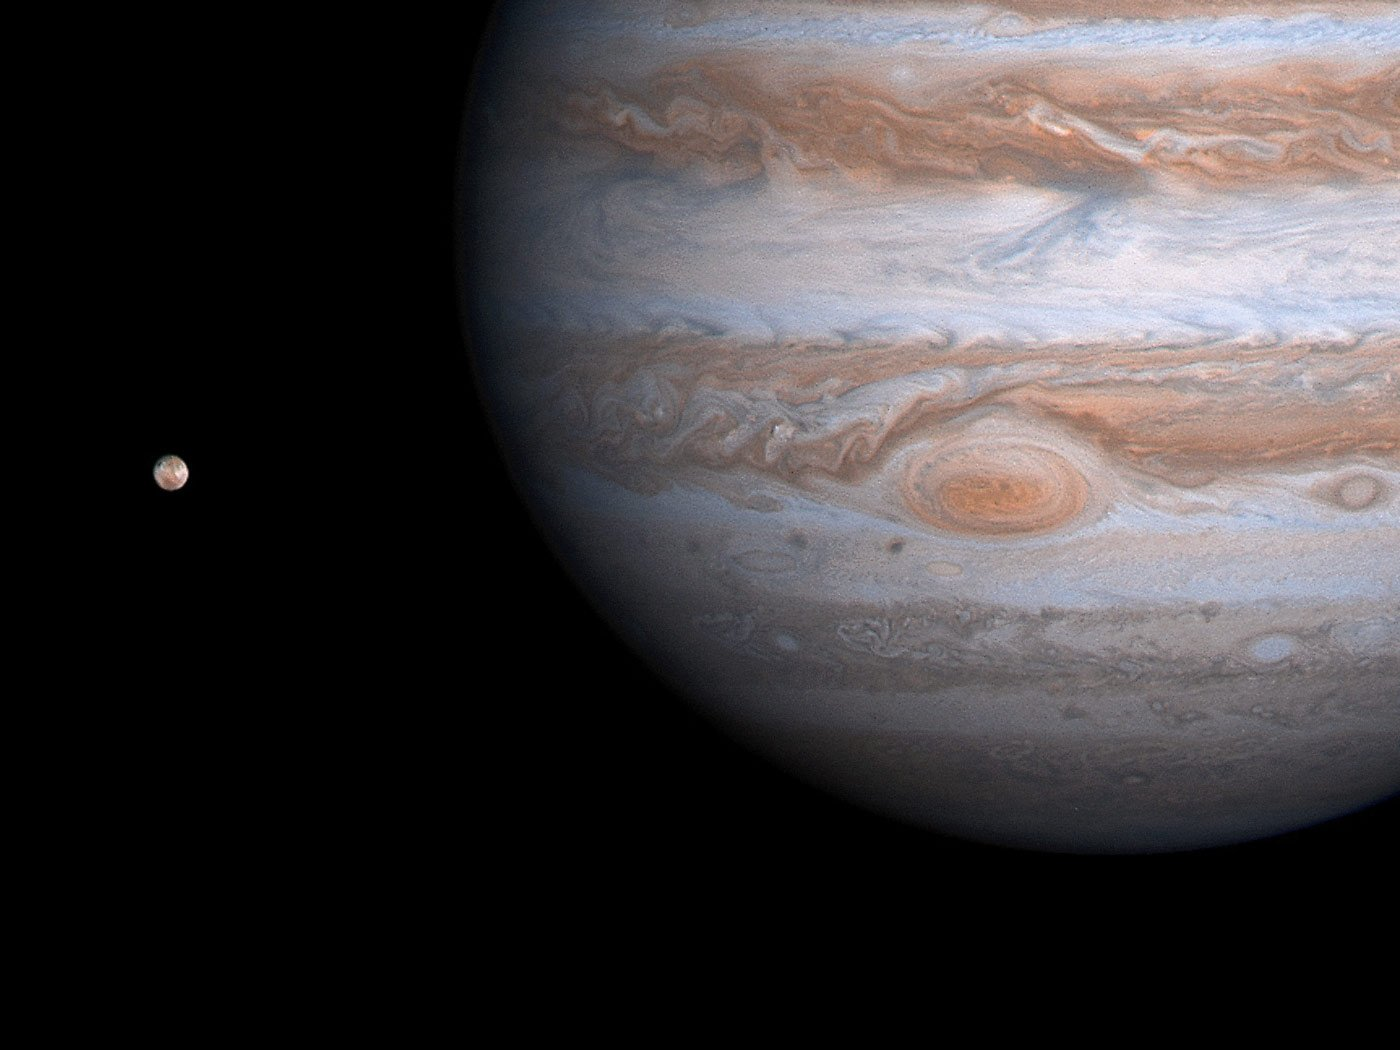 Jupiter Wallpaper 12   1400 X 1050 stmednet 1400x1050